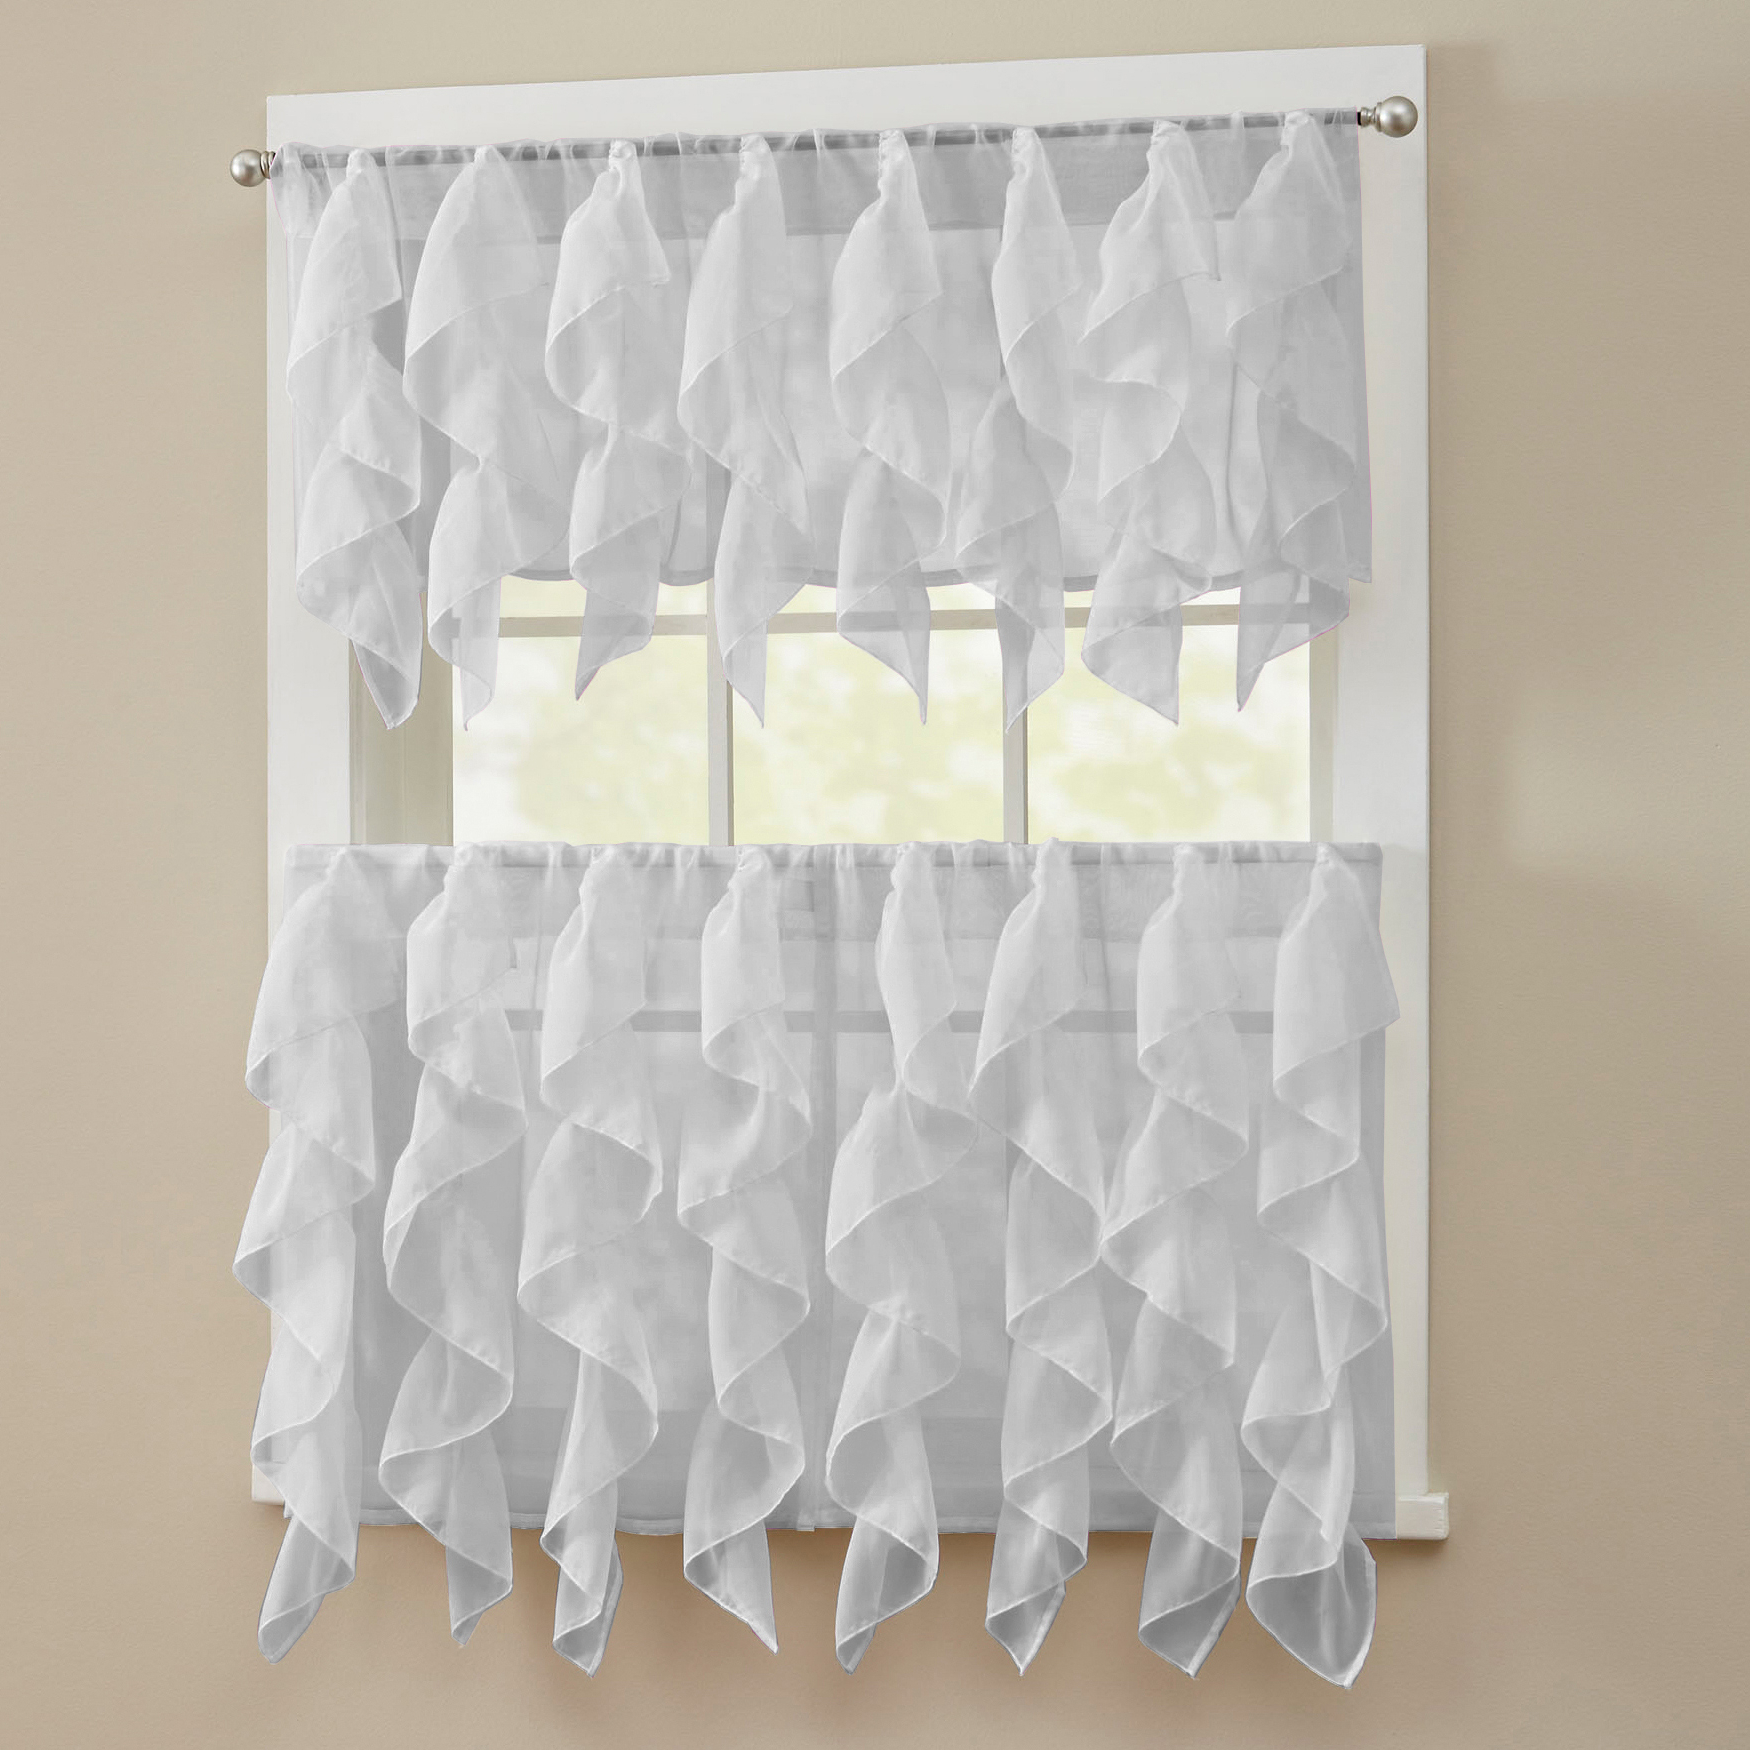 Vertical Ruffled Waterfall Valance And Curtain Tiers In Most Current Details About Sheer Voile Vertical Ruffle Window Kitchen Curtain Tiers Or Valance Silver (View 6 of 20)